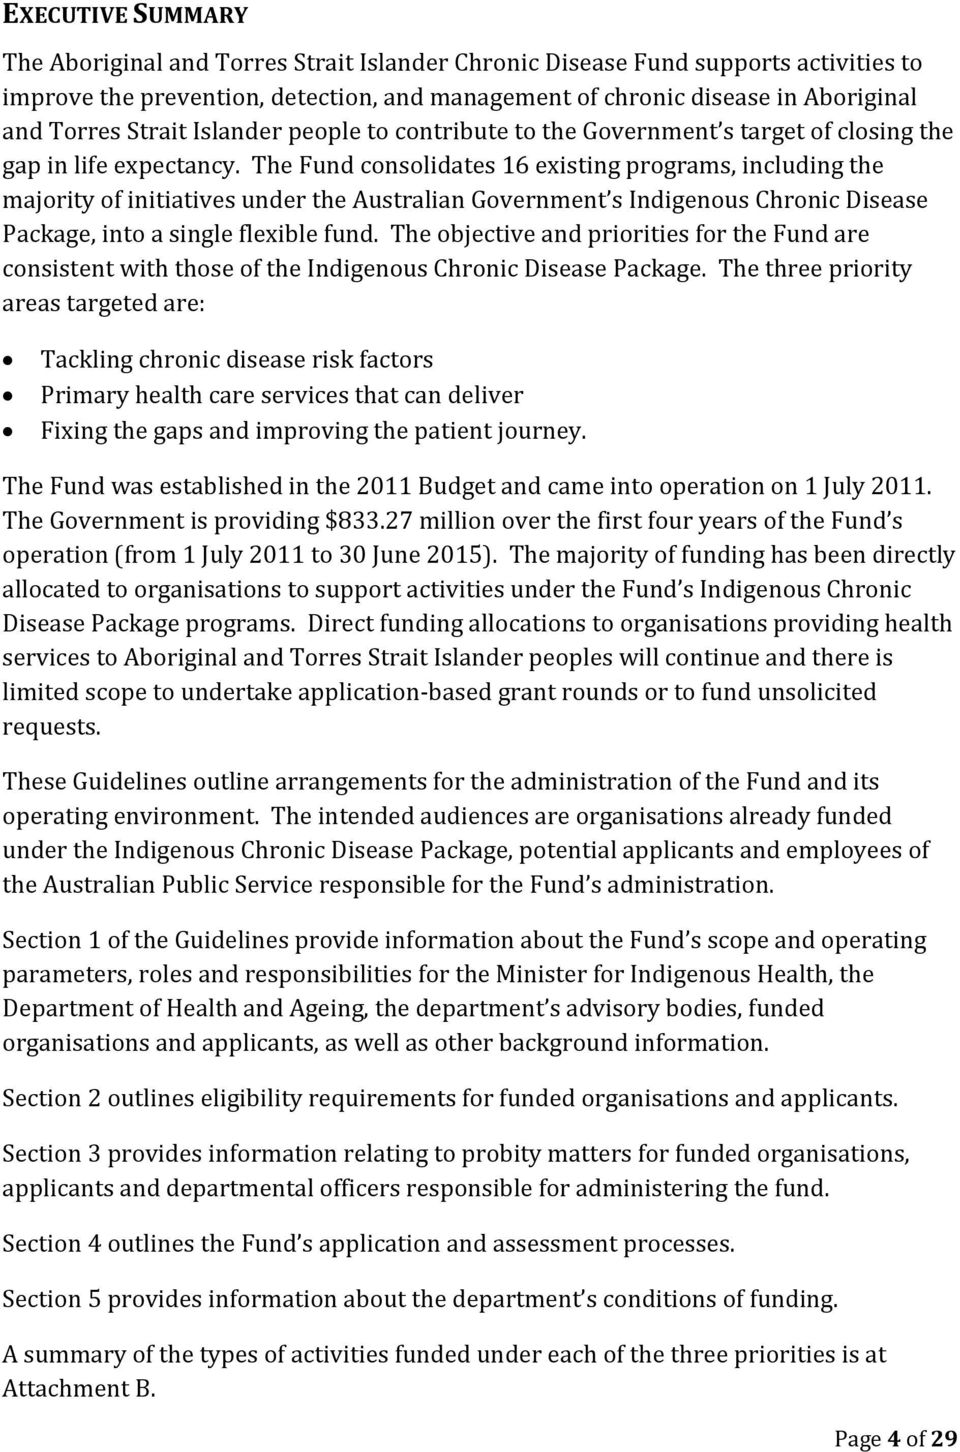 The Fund consolidates 16 existing programs, including the majority of initiatives under the Australian Government s Indigenous Chronic Disease Package, into a single flexible fund.